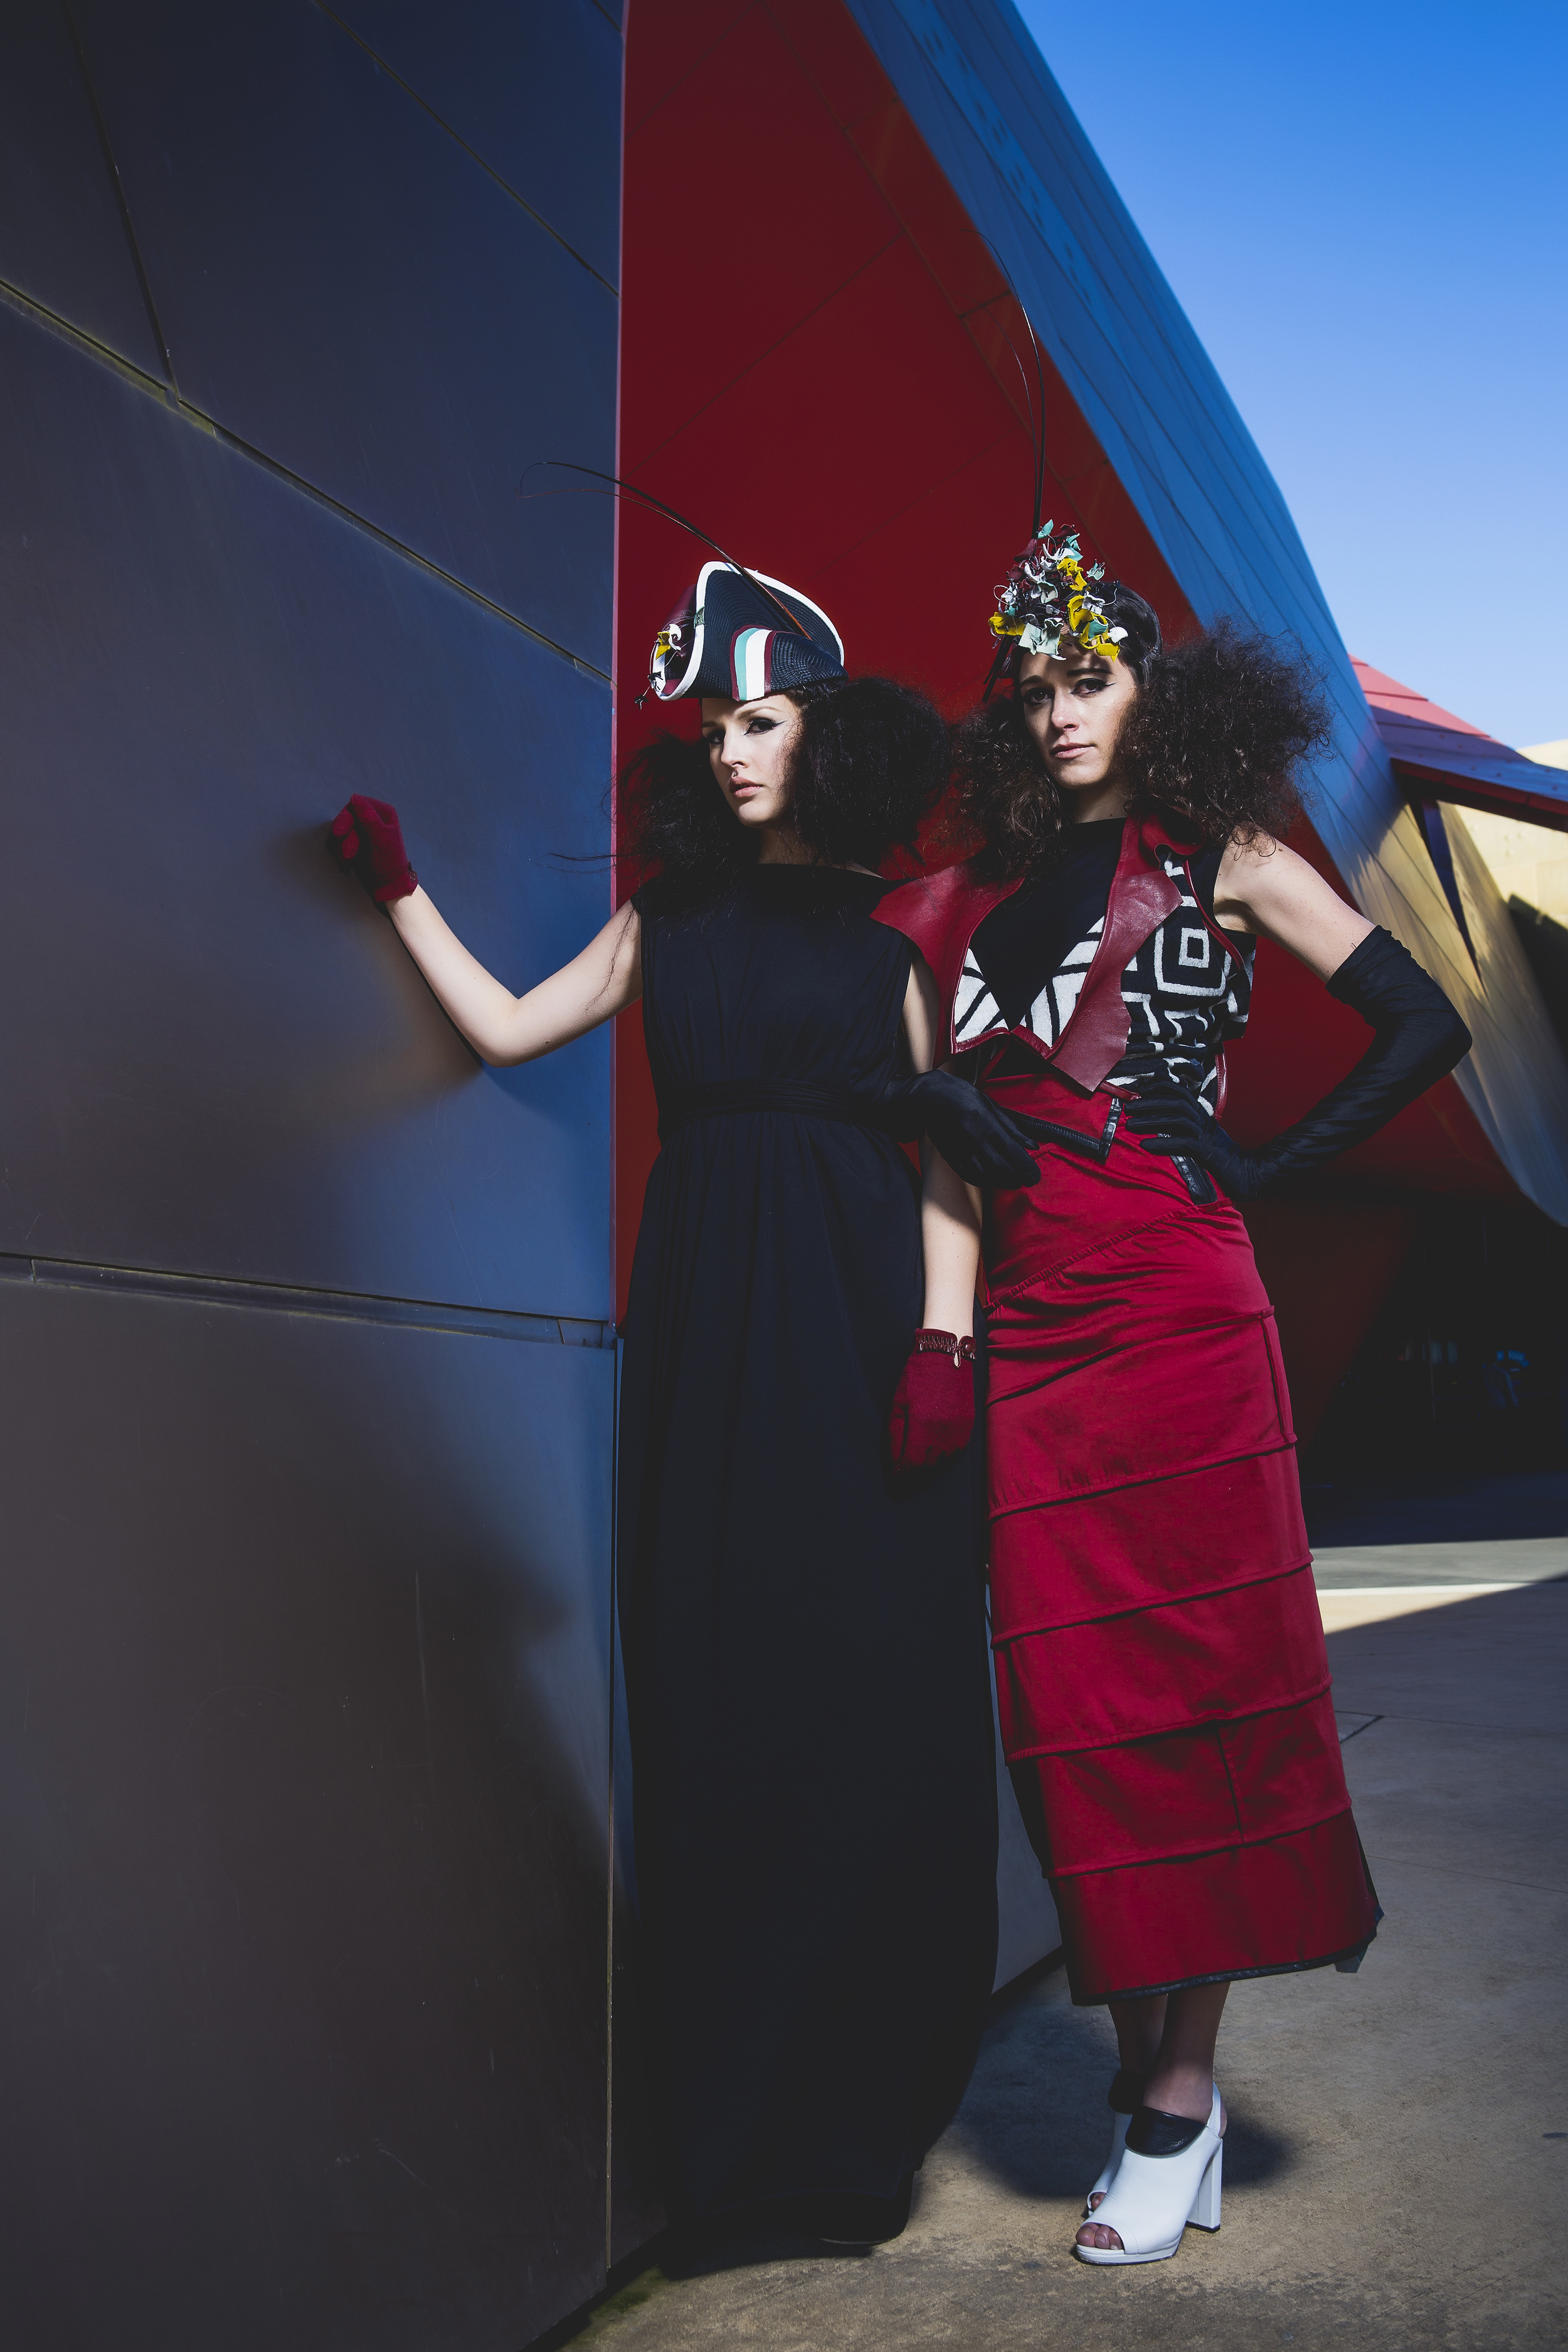 Photographer: Red Photogaphy Makeup: Belle Artistry Models: Nicole Luker, Rachelle Dawson (Haus Models)